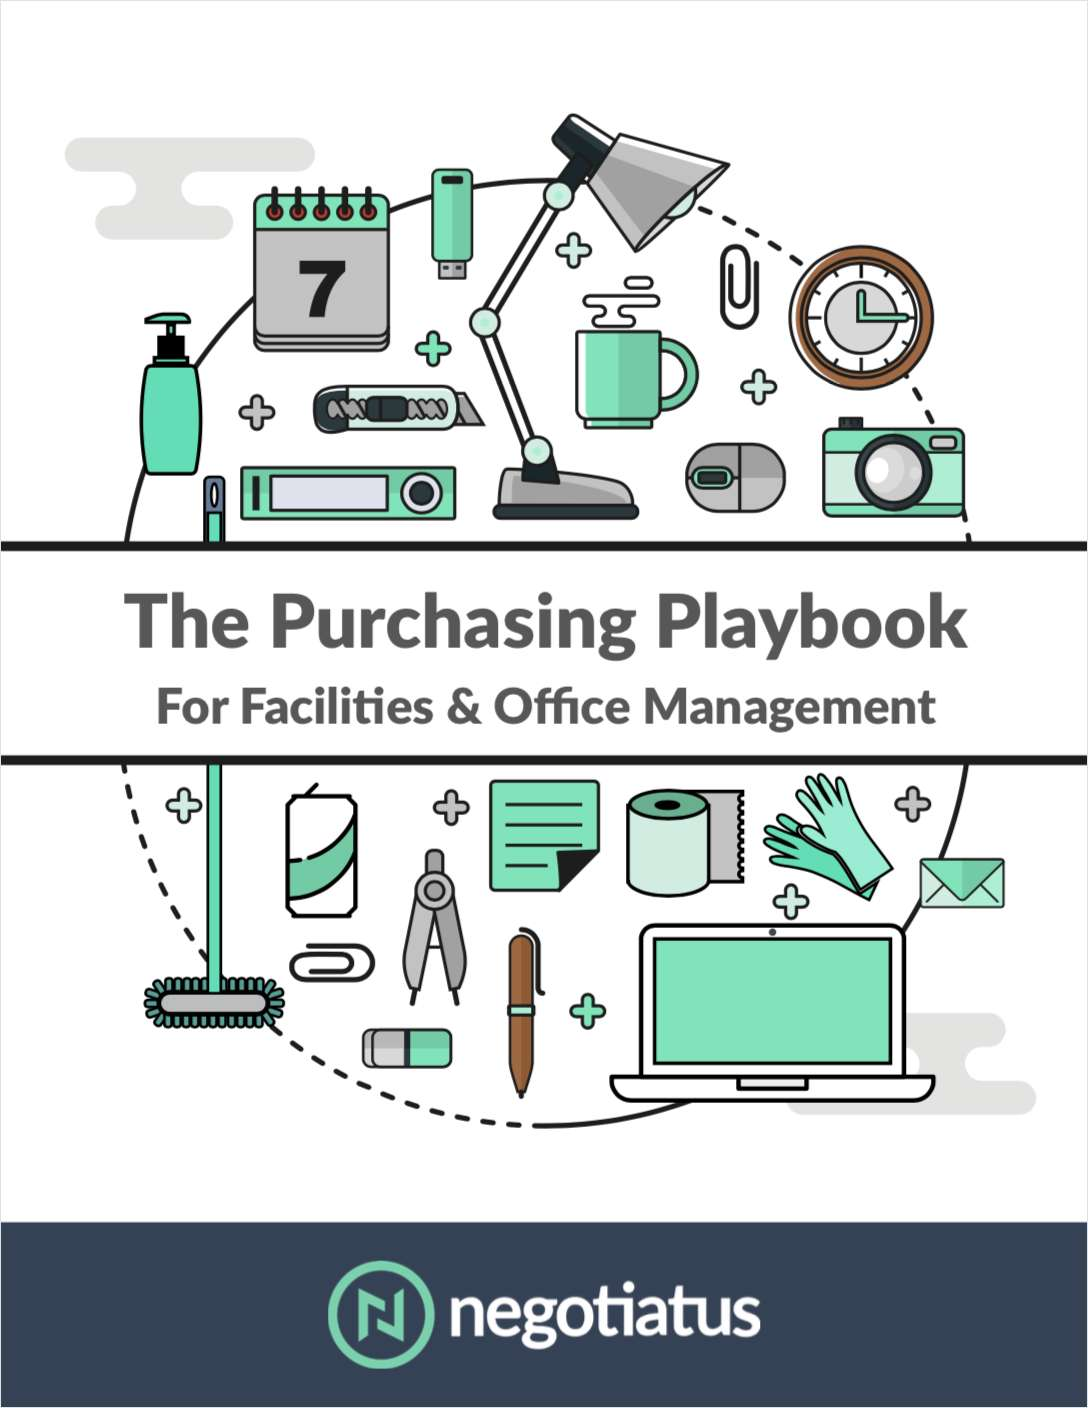 The Purchasing Playbook For Facilities & Office Management